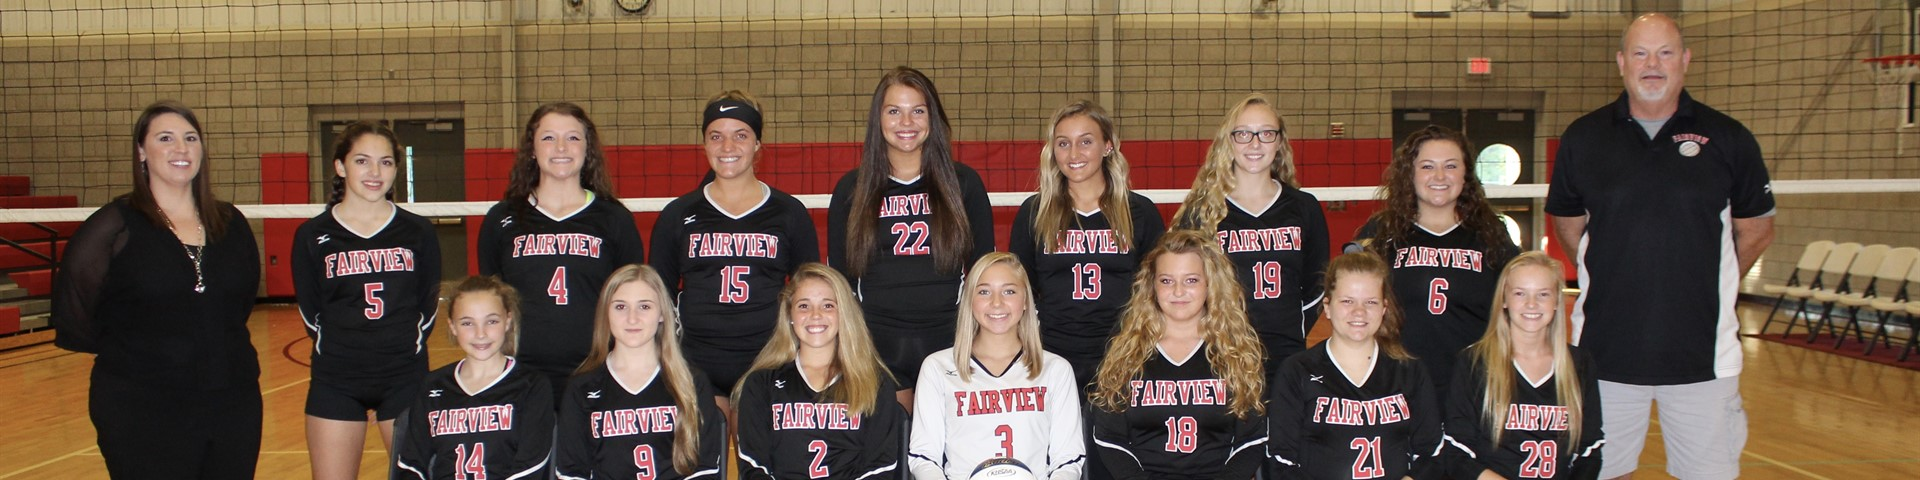 Fairview Varsity Volleyball